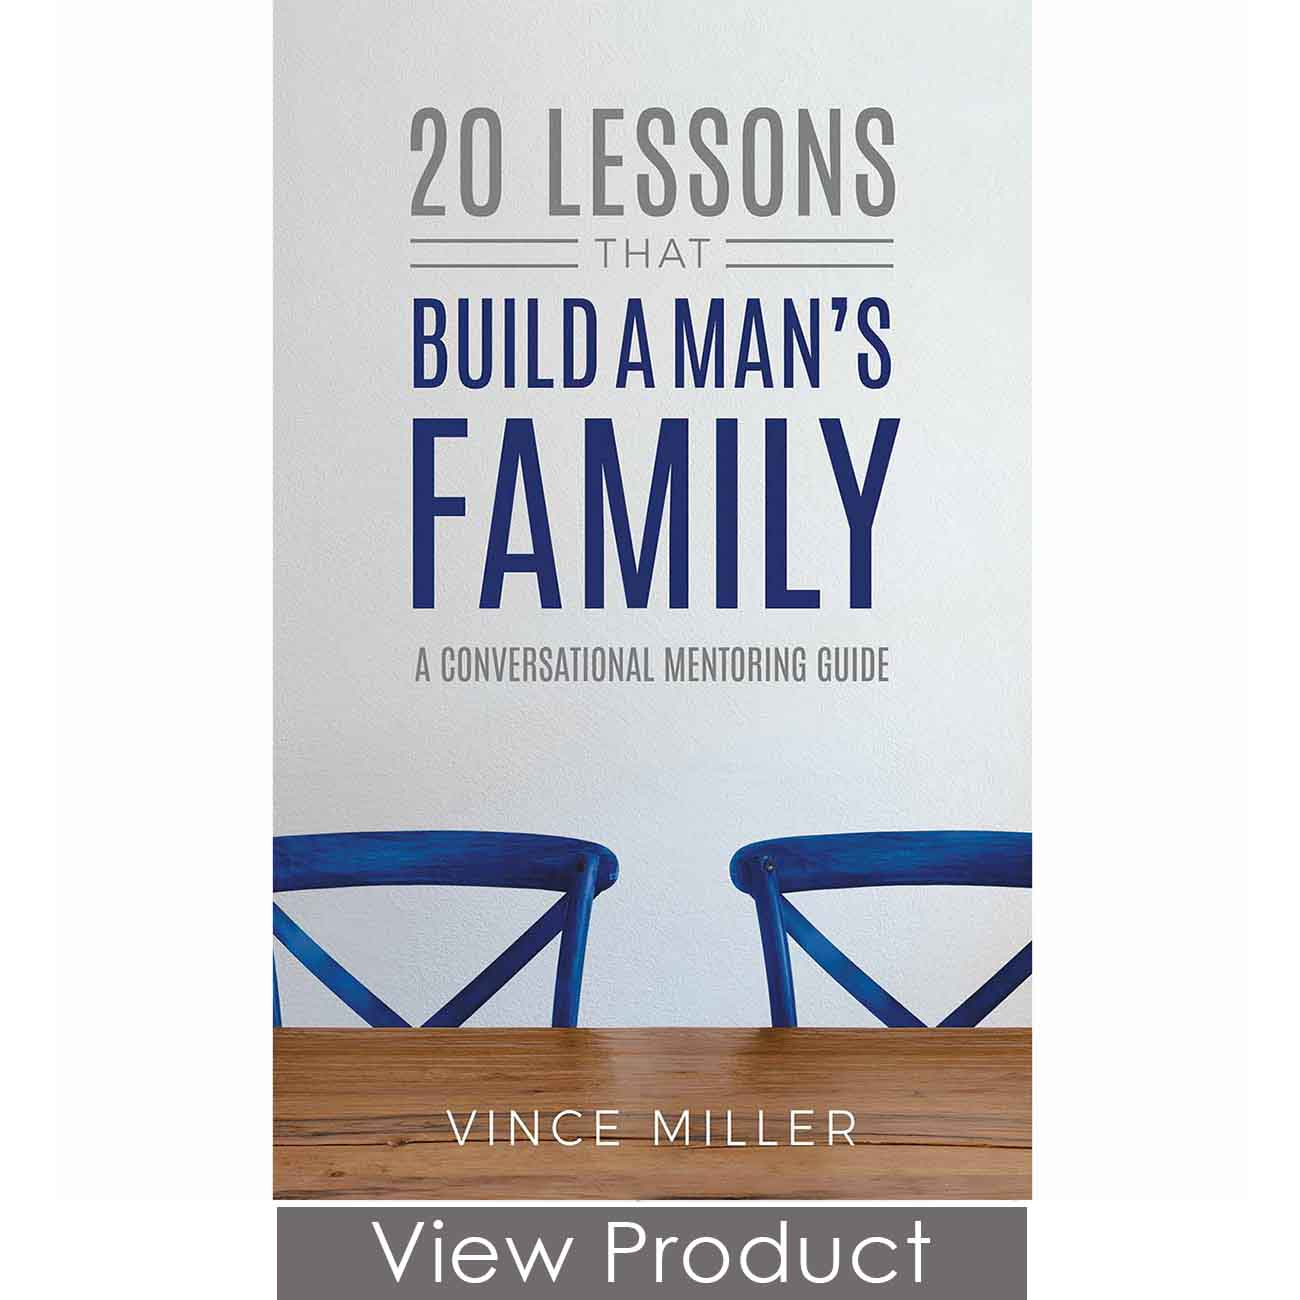 30 Lessons that Build a Man's Family